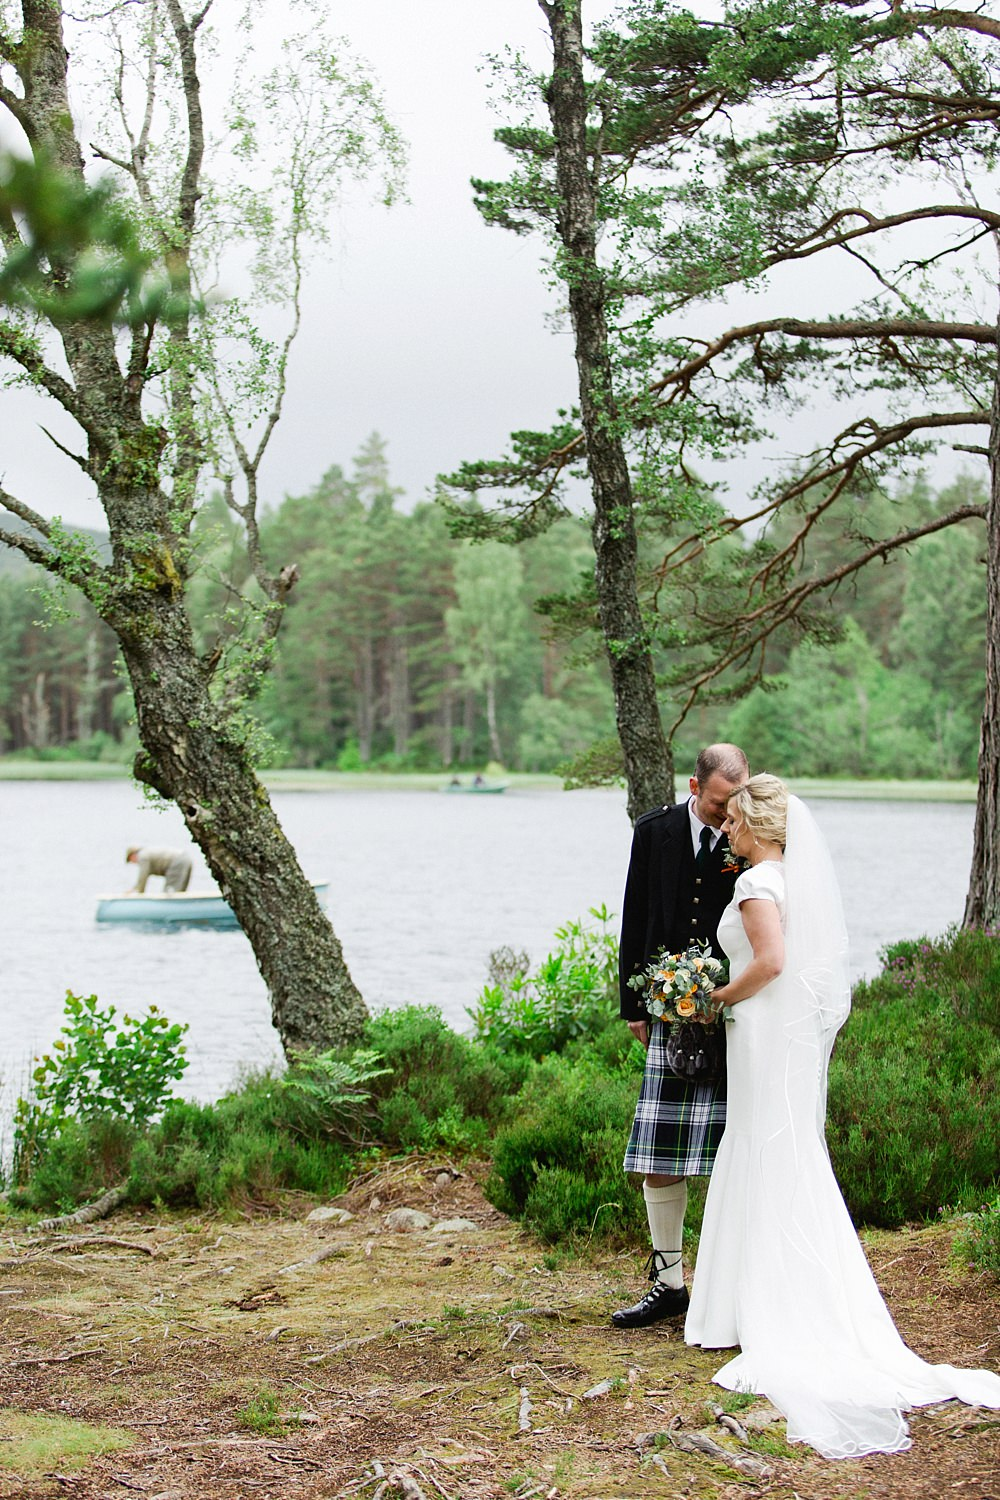 Chantal Lachance-Gibson Photography /destination wedding photographers,Fine Art Wedding Photographers Aberdeenshire,Fine Art Wedding Photographers Royal Deeside,Fine Art Wedding Photographers Scotland,Glen Tanar Estate Wedding,documentary wedding photographers Scotland,husband and wife photographers scotland,natural wedding photographers Scotland,photographers aberdeenshire,photographers royal deeside,romantic photographers aberdeenshire,two wedding photographers scotland,wedding photographers scotland,